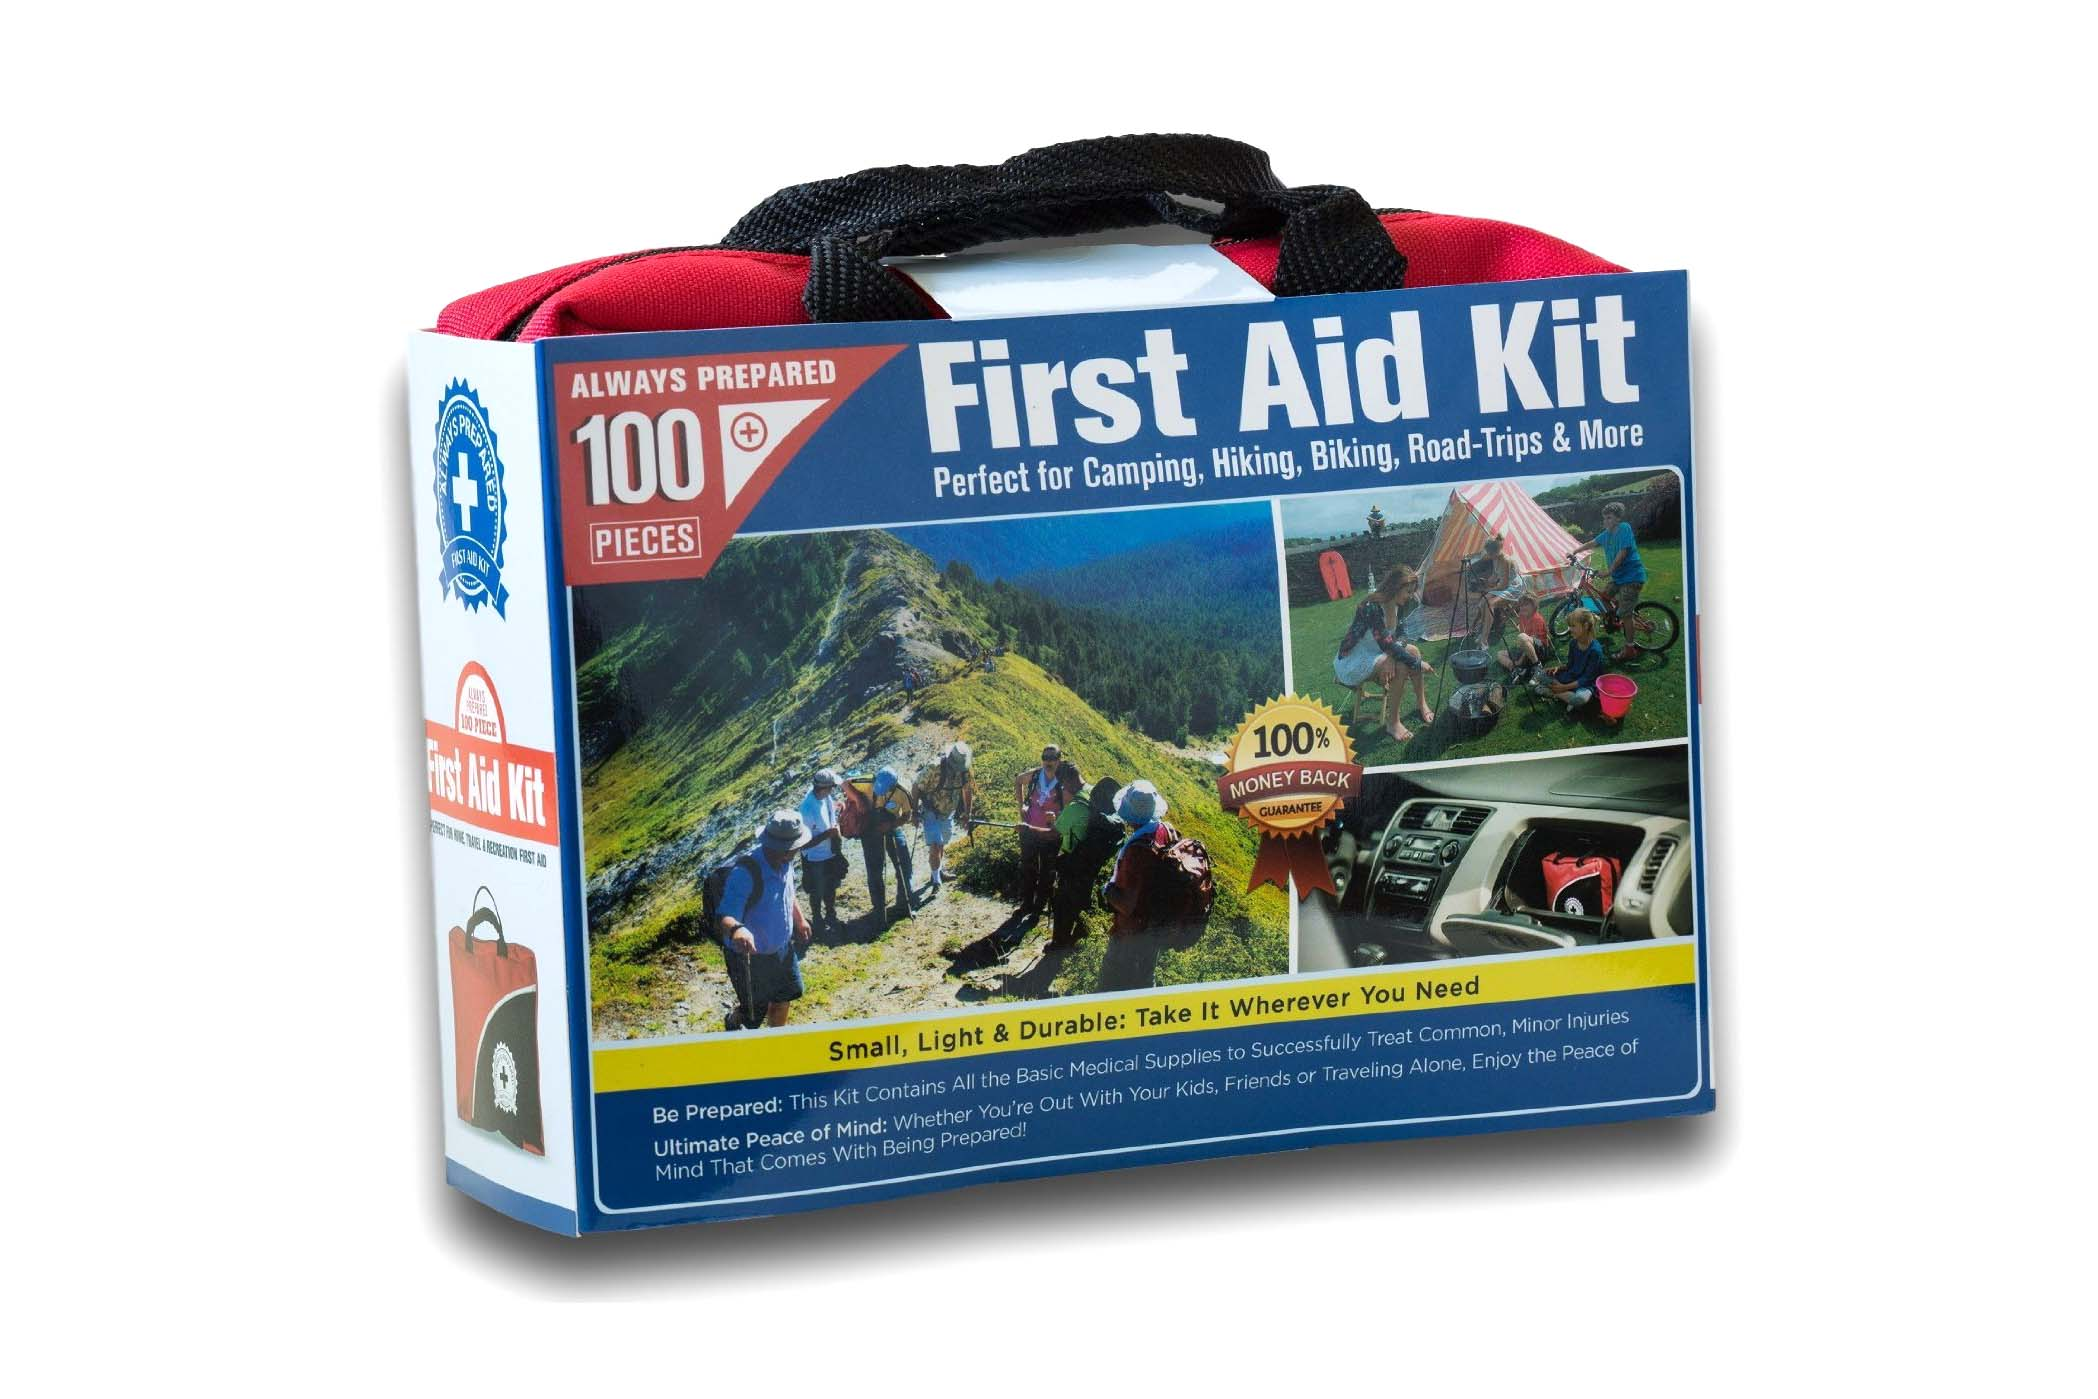 First Aide Kit - 100 pieces - 4.5 stars - $25 (Prime)